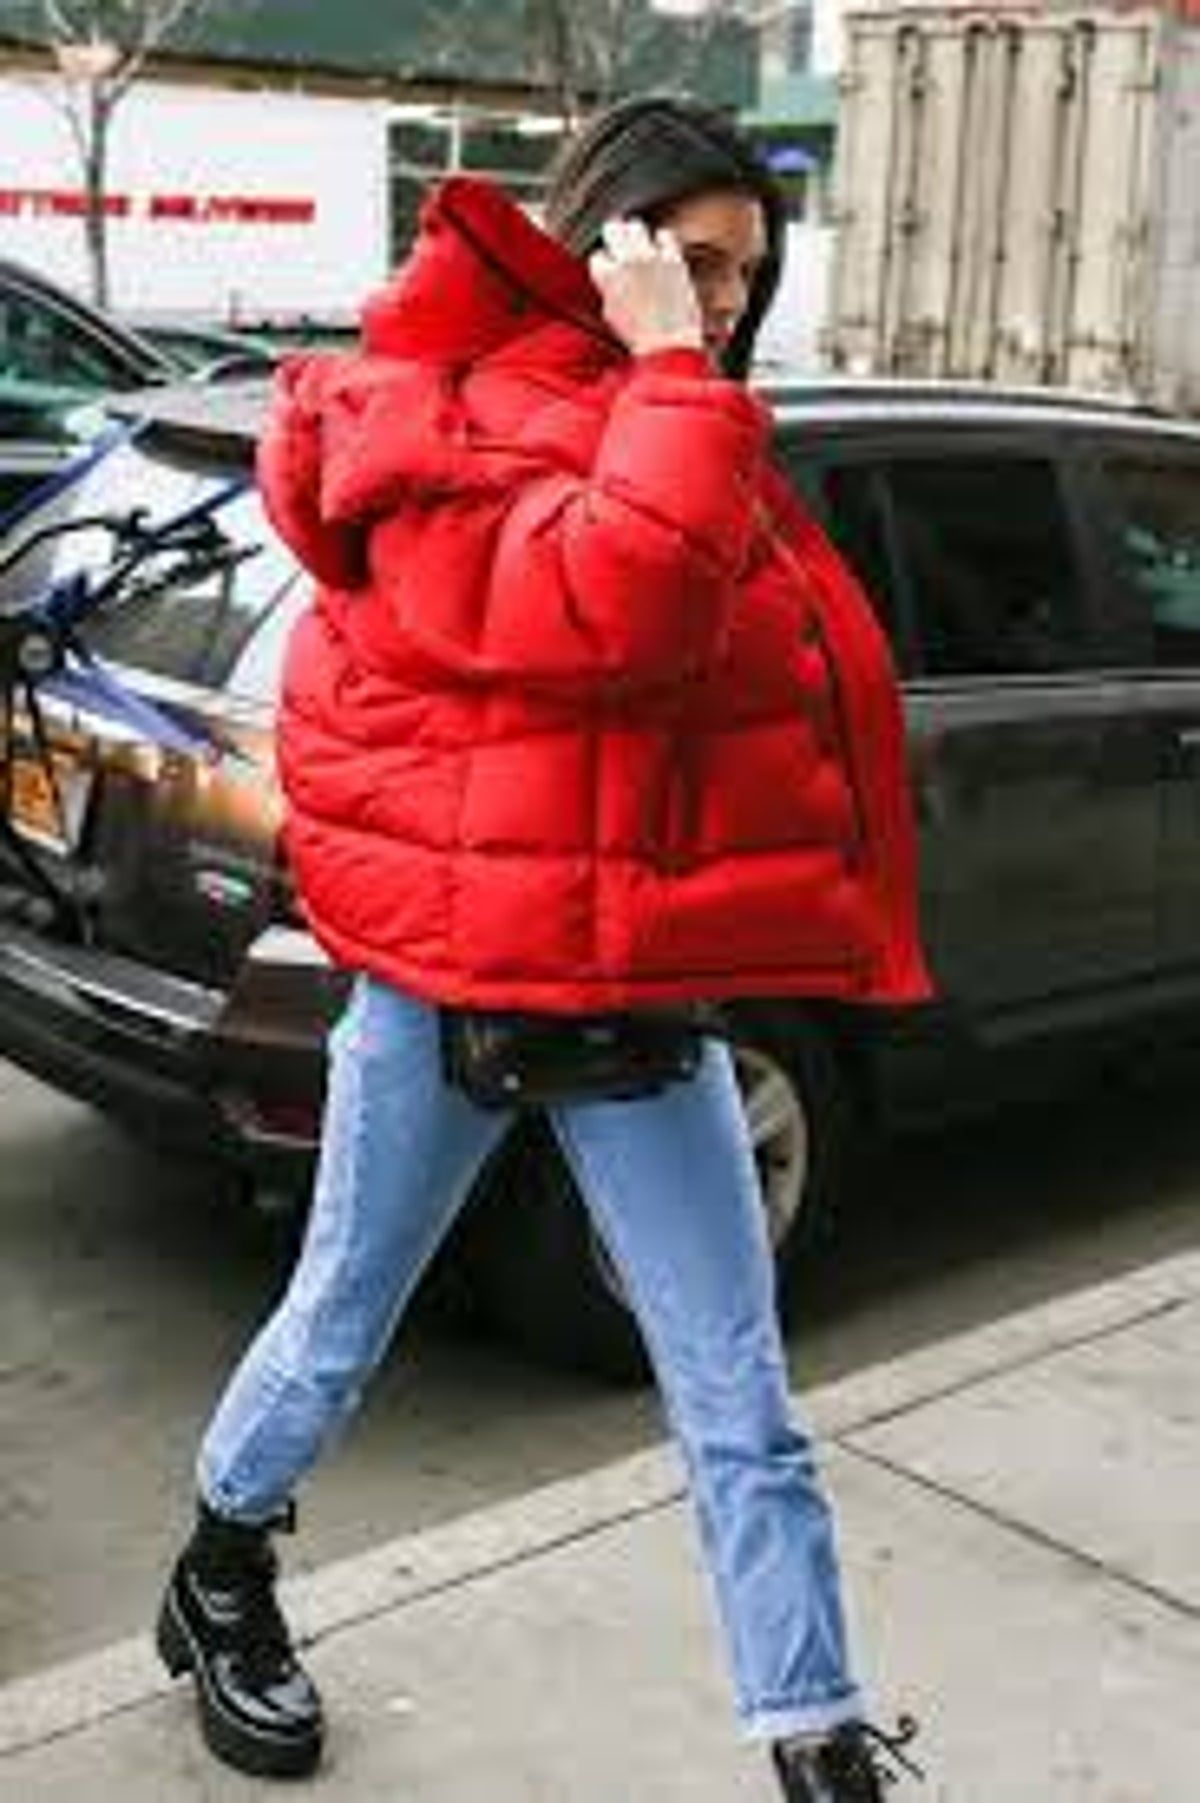 Pin By Jjbear Share On Off The Cuff Red Puffer Jacket Red Jacket Outfit Jenner Outfits [ 1803 x 1200 Pixel ]